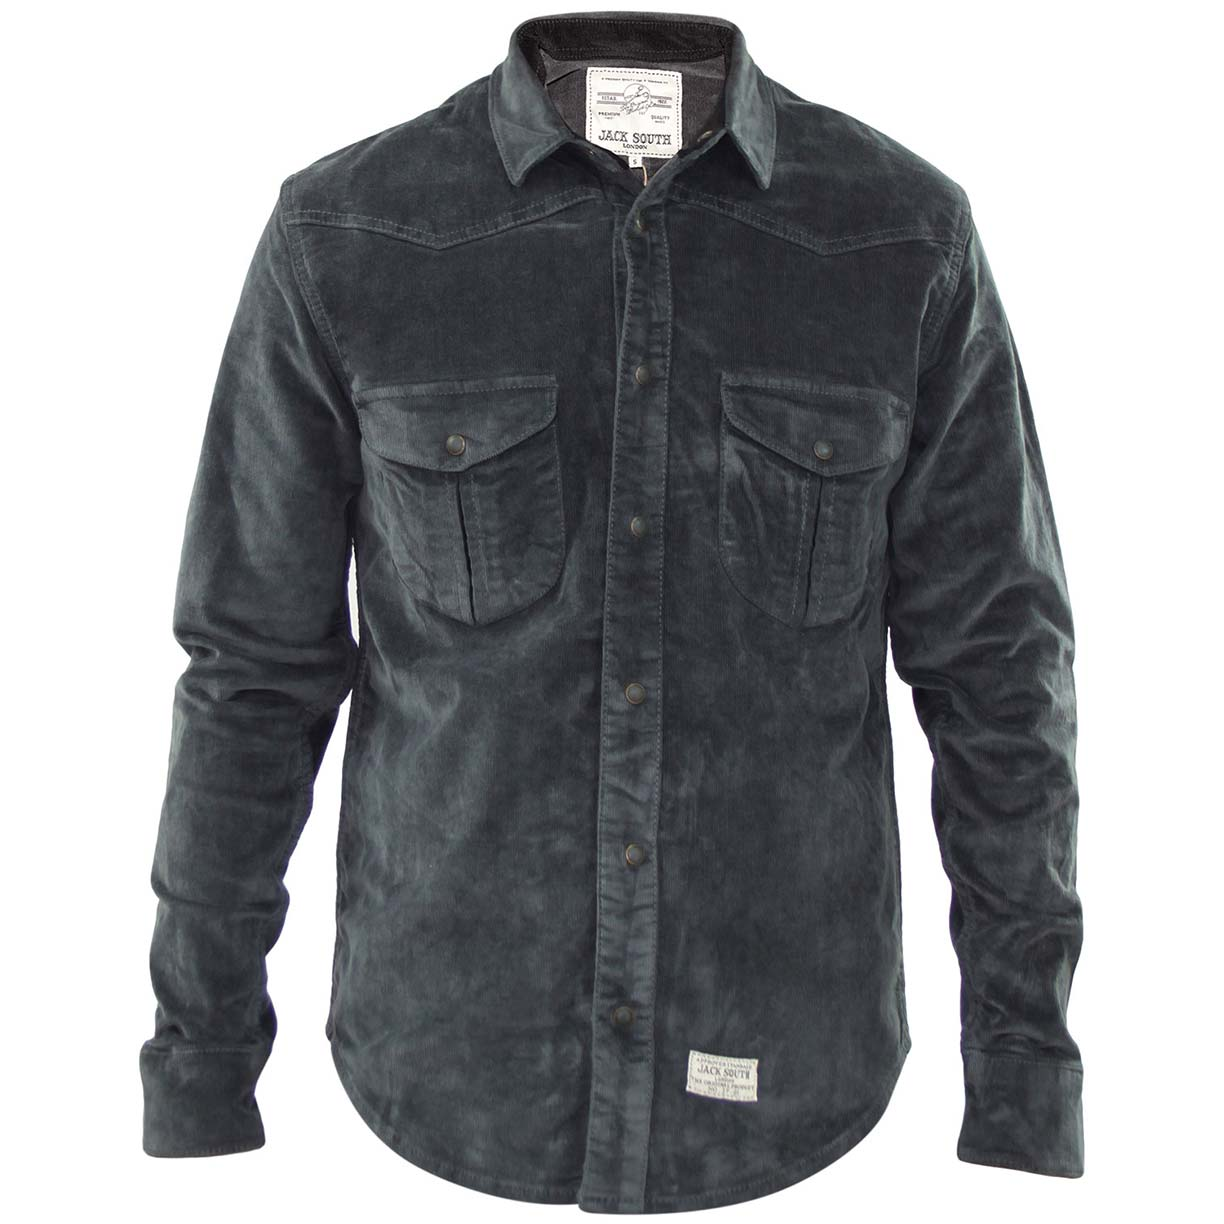 Jack South Shirt Soria Grey